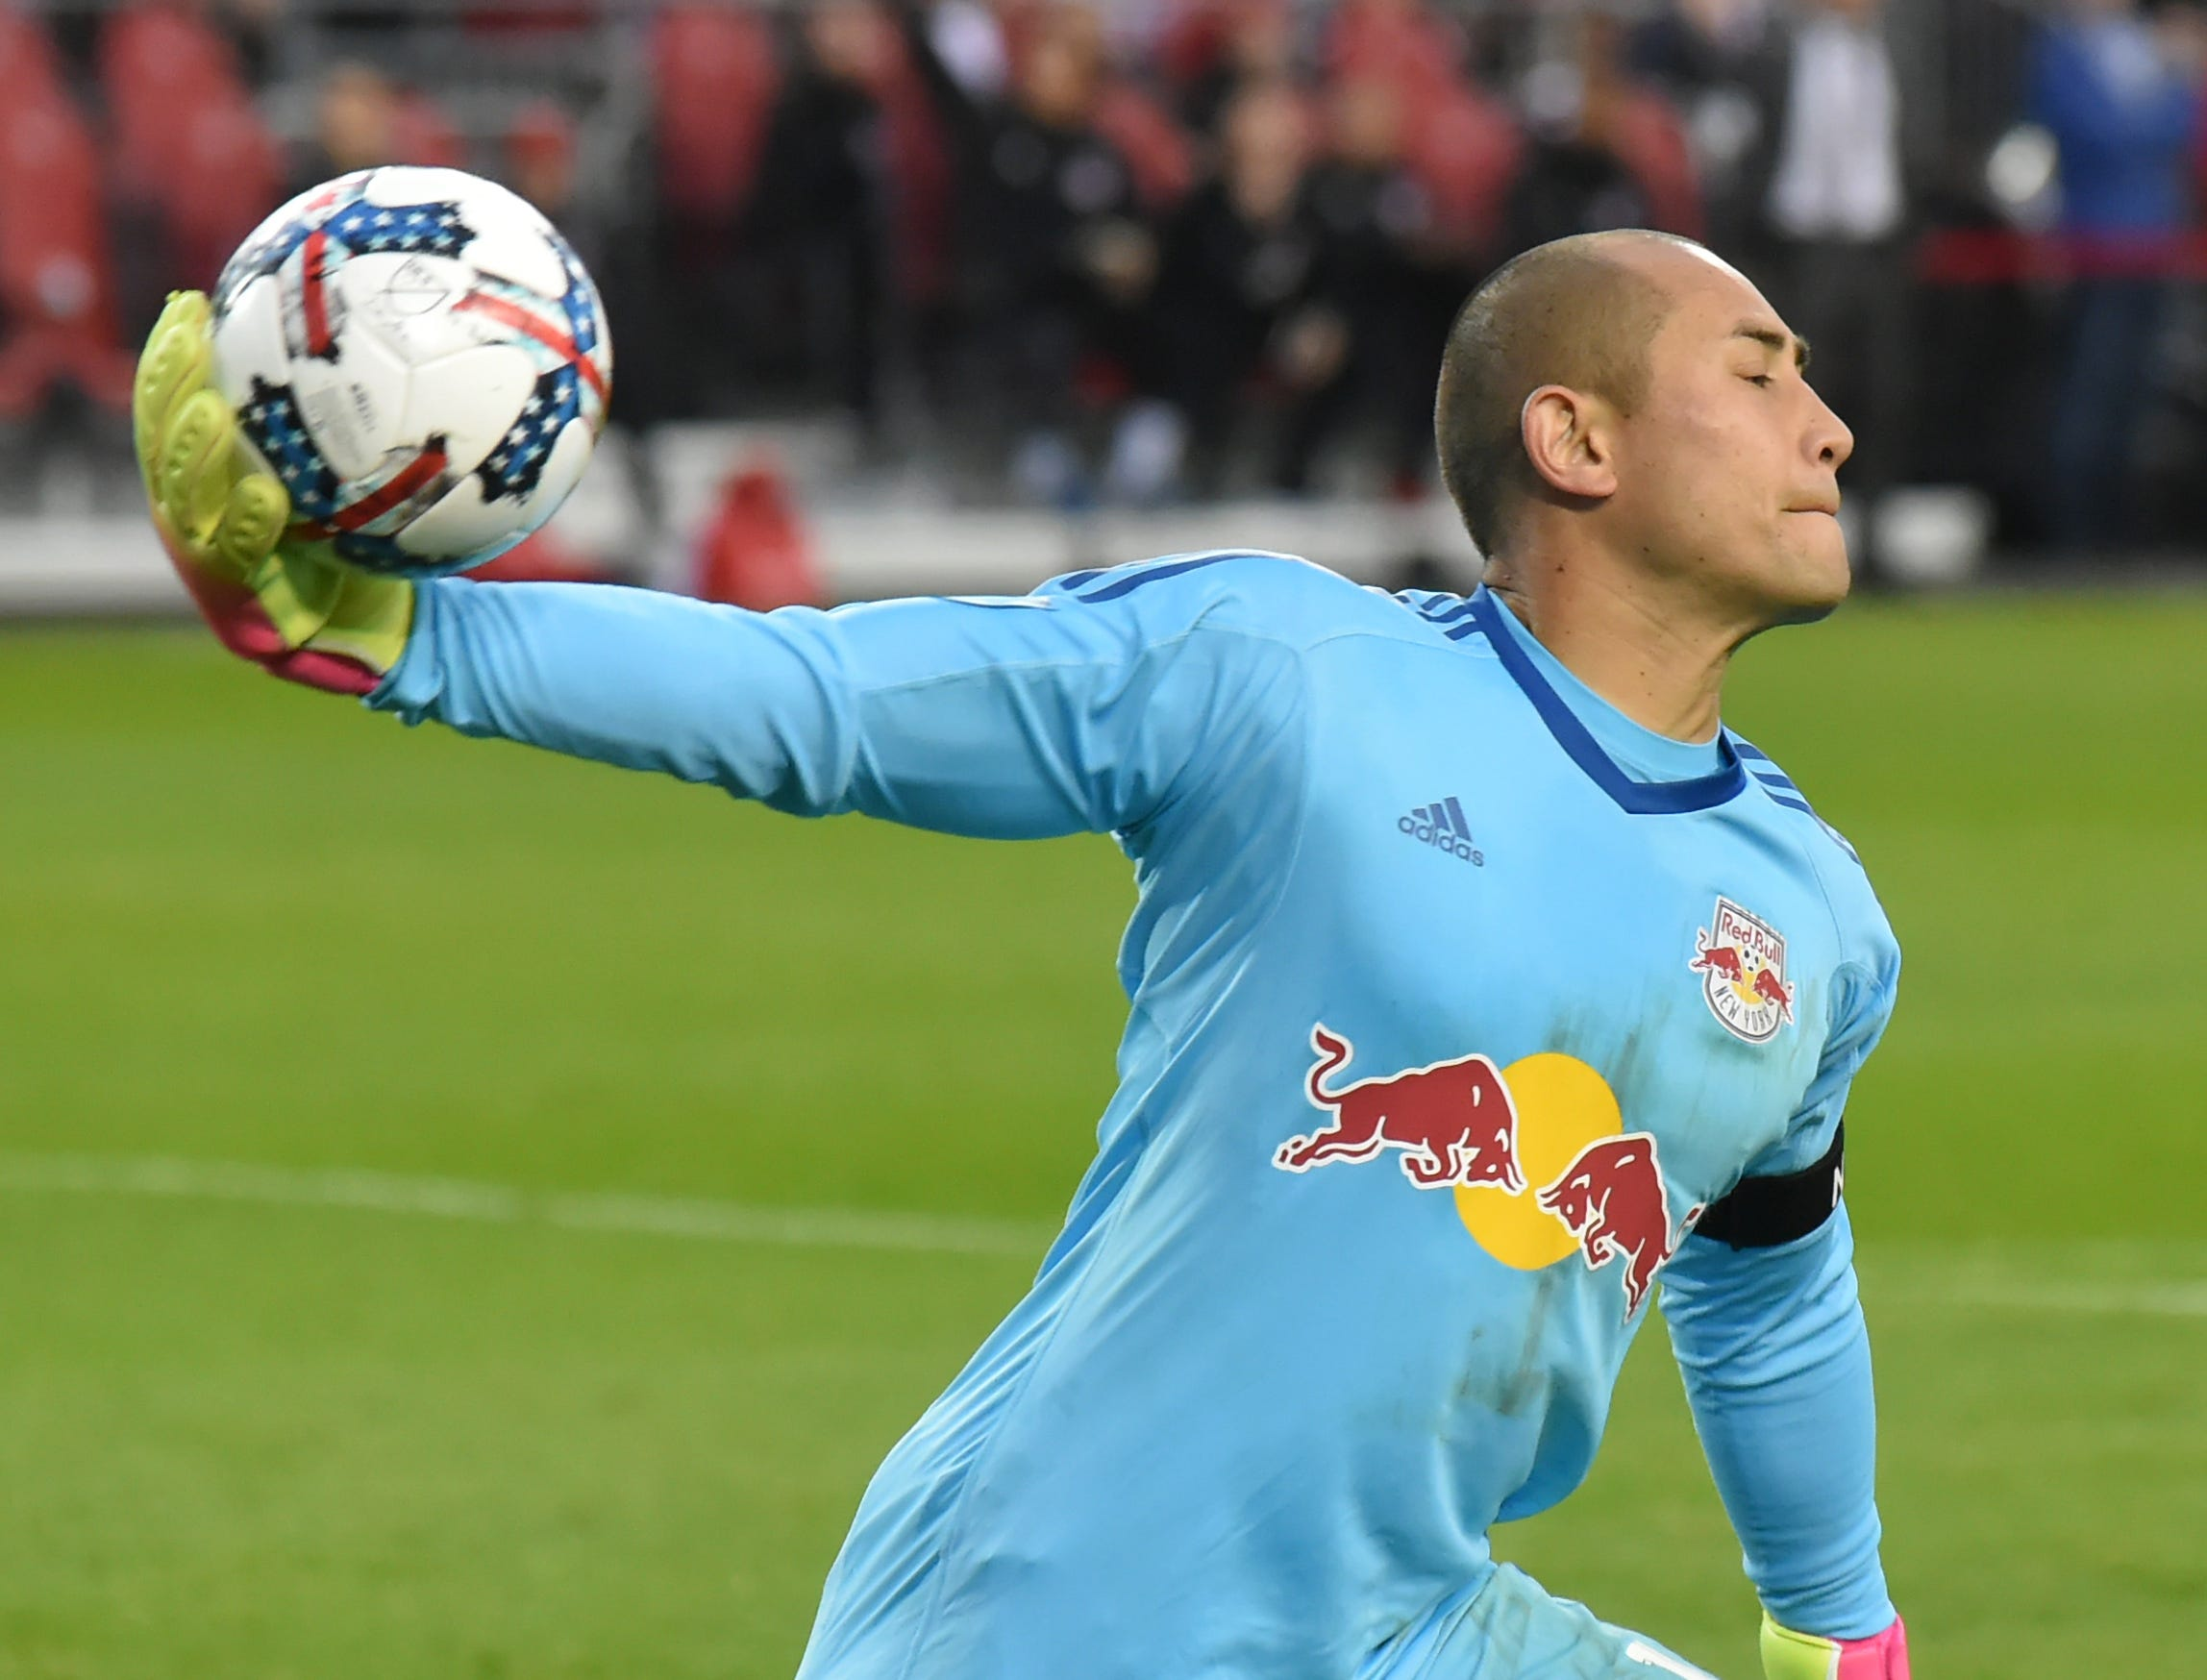 New York Red Bulls name Luis Robles as team captain for 2018 MLS season